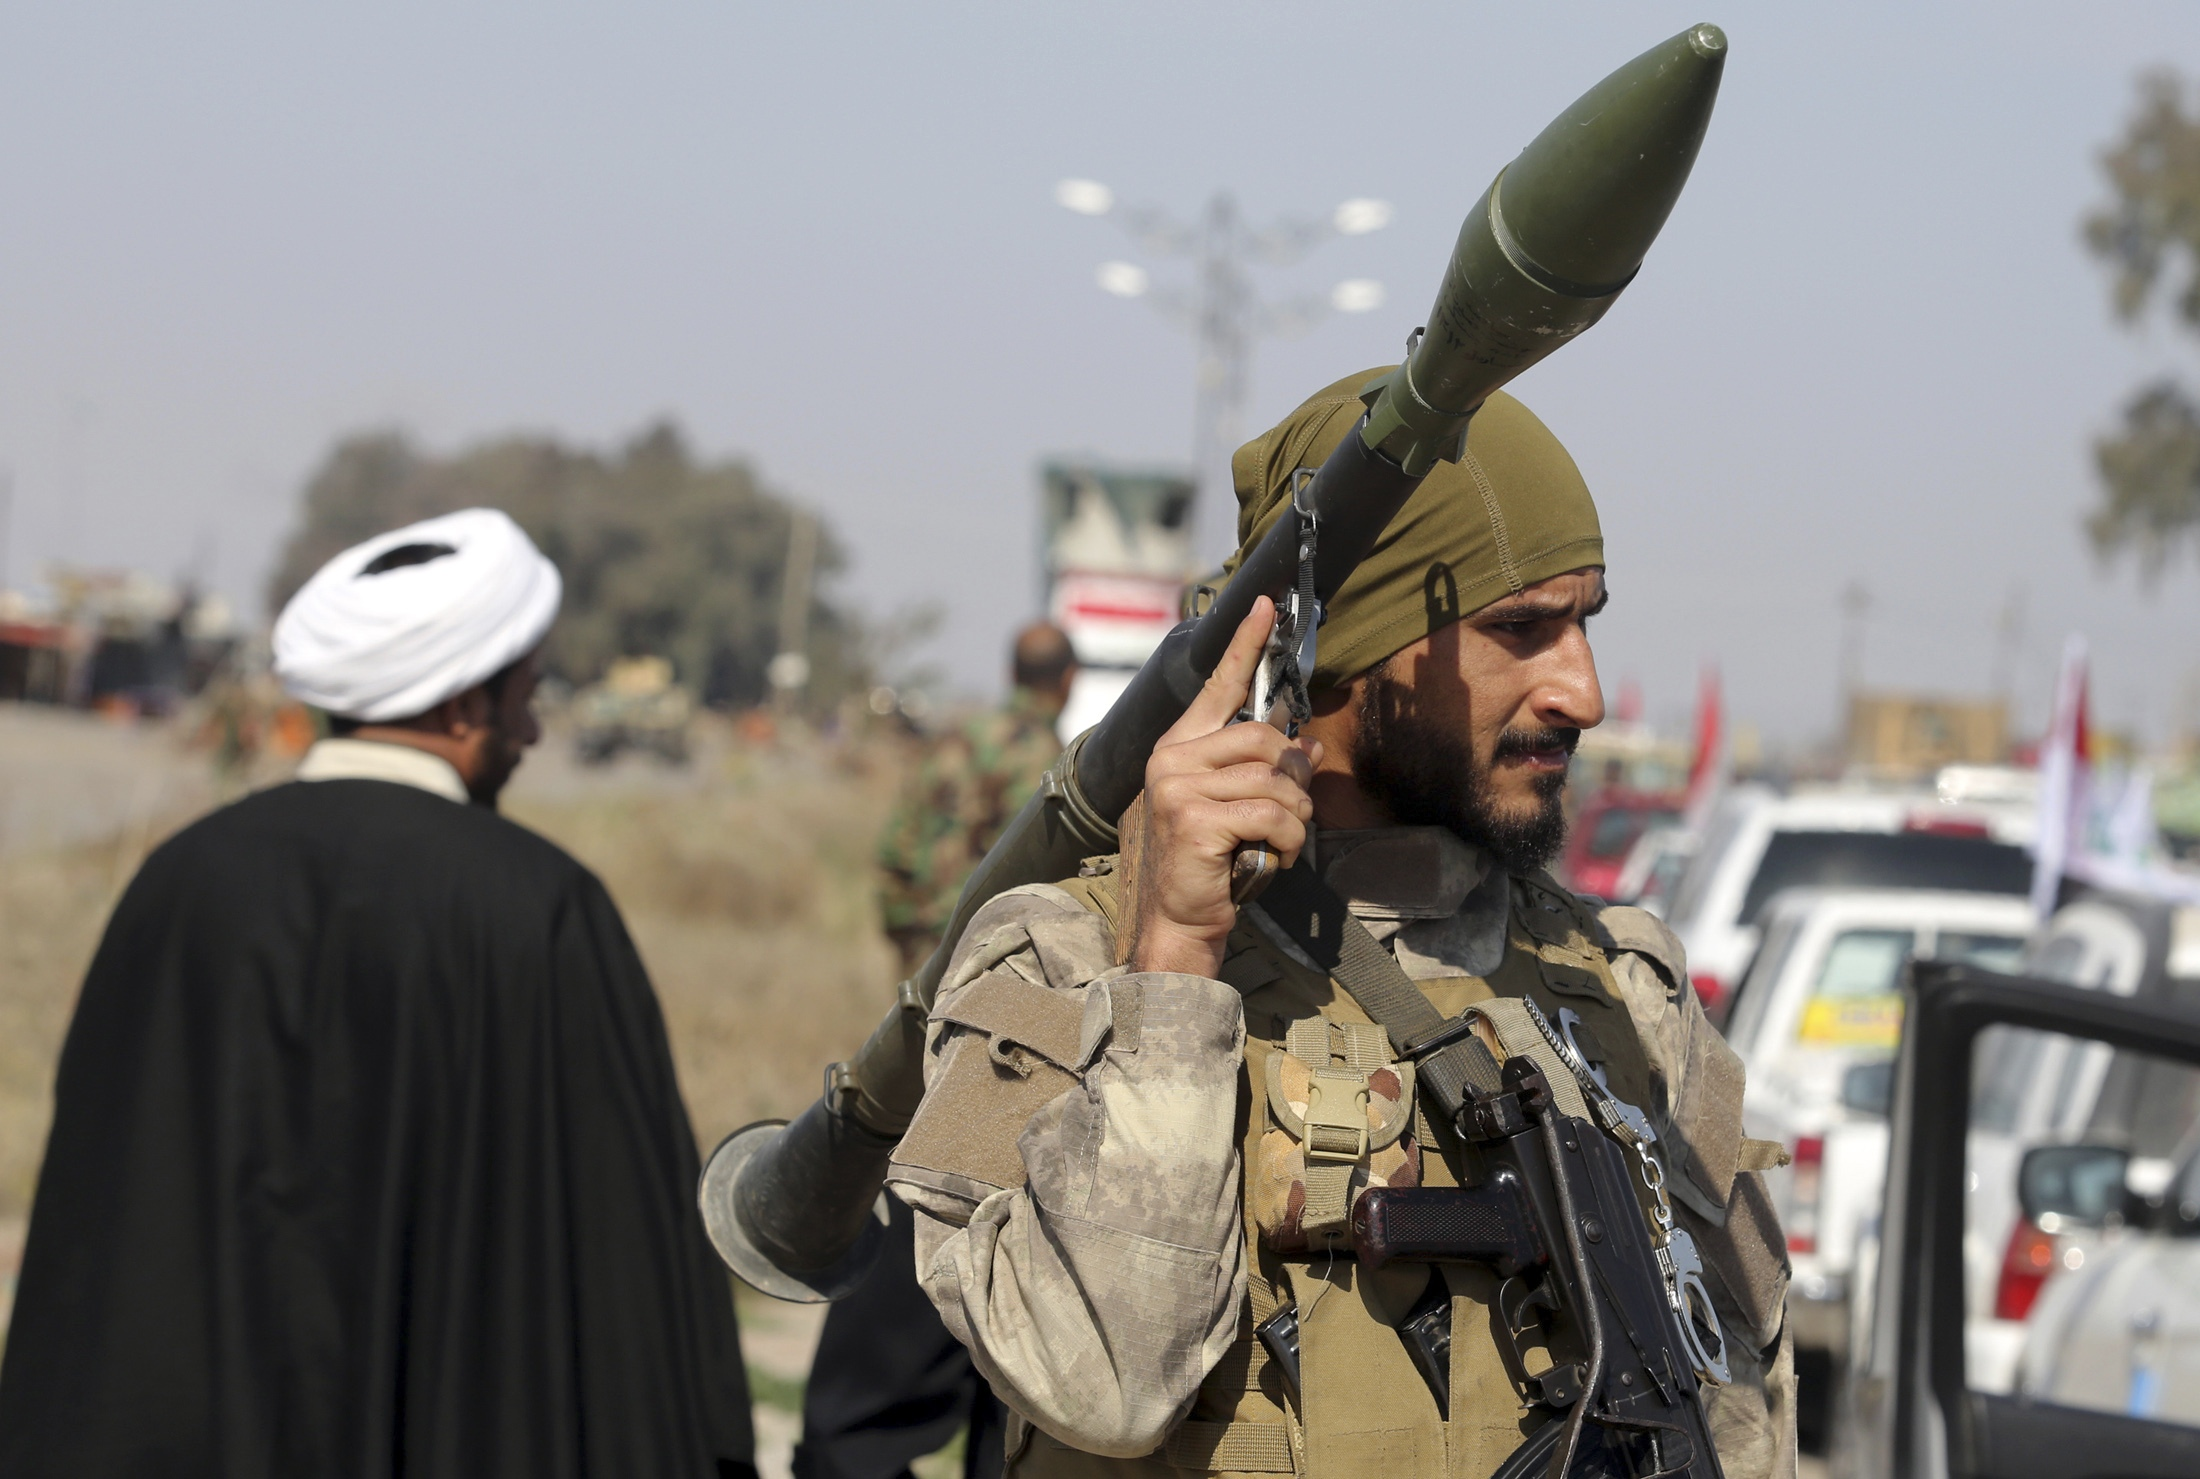 U.S. identifies 1,200 potential fighters for Syria training